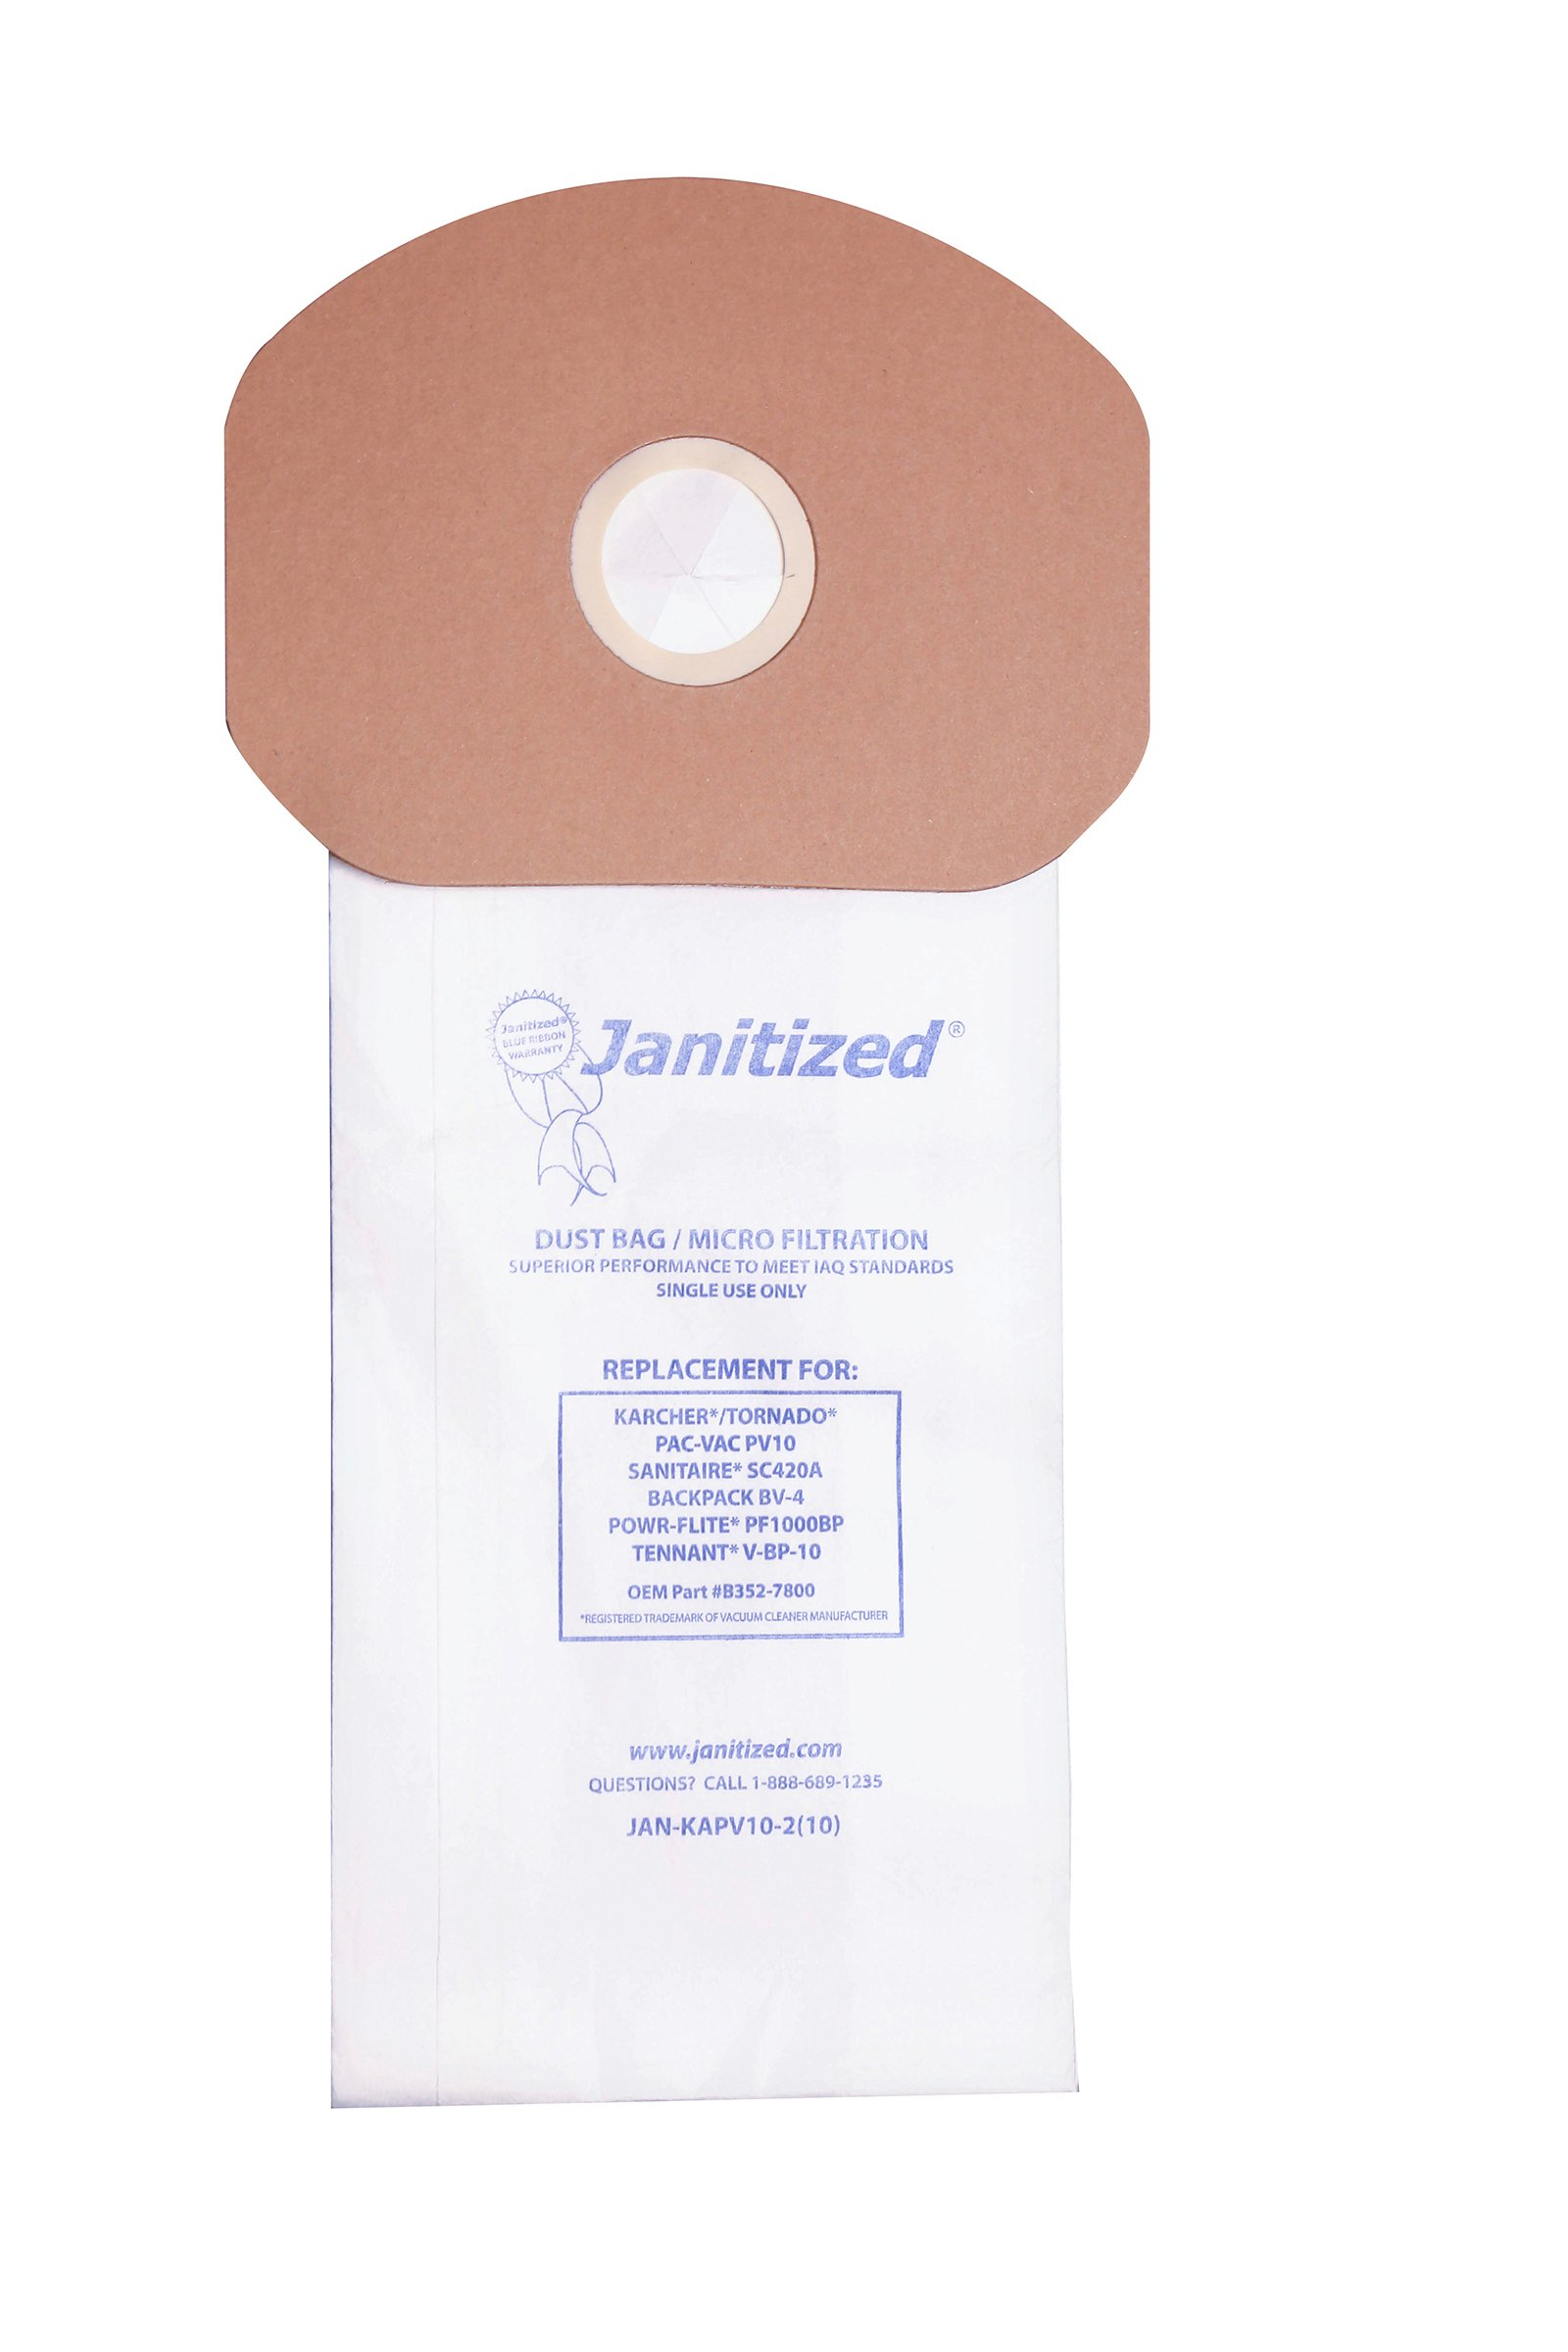 Janitized JAN-KAPV10-2(10) Premium Replacement Commercial Vacuum Paper Bag, Karcher/Tornado PV10, Power-Flite PF1000BP, Sanitaire SC420A, Tennant V-BP-10, OEM#B352-7800, 69370, 87537 (Case of 100) by Janitized